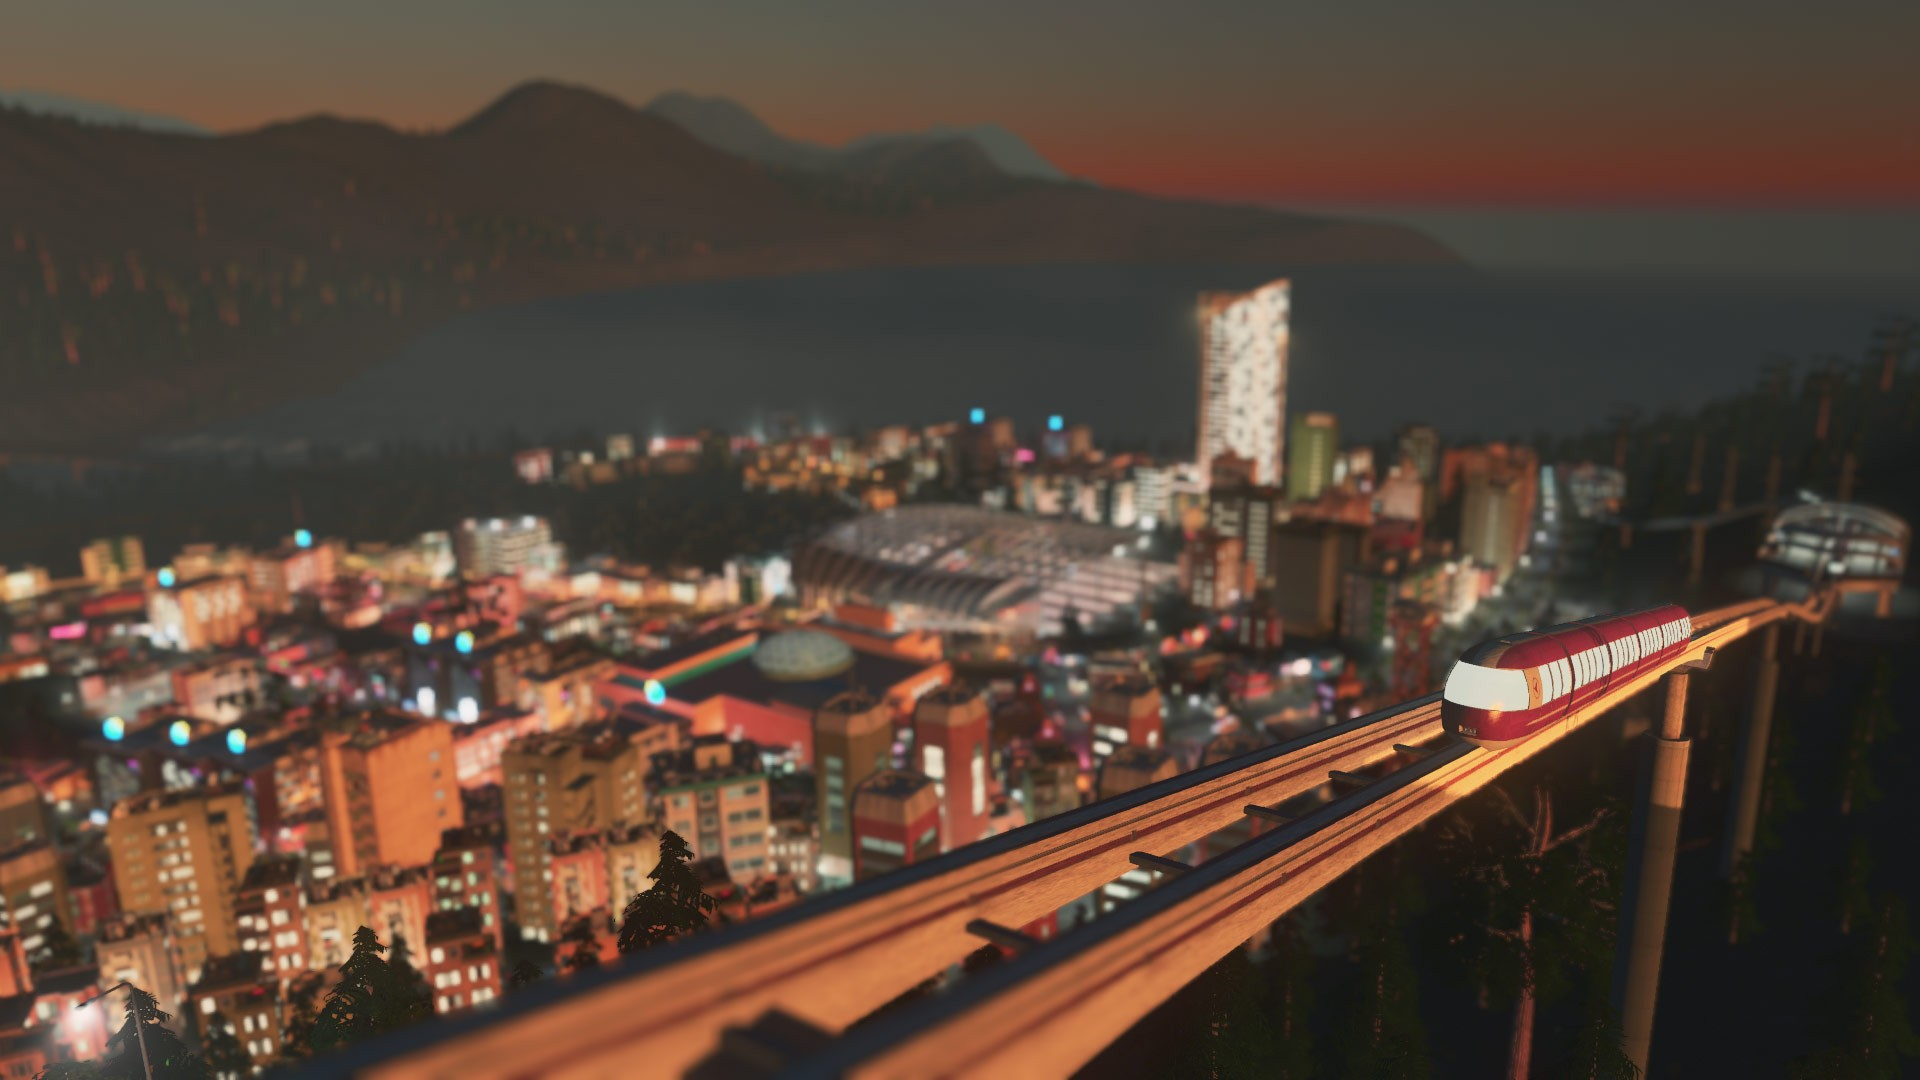 Cities: Skylines' next expansion, Industries, launches on October 23